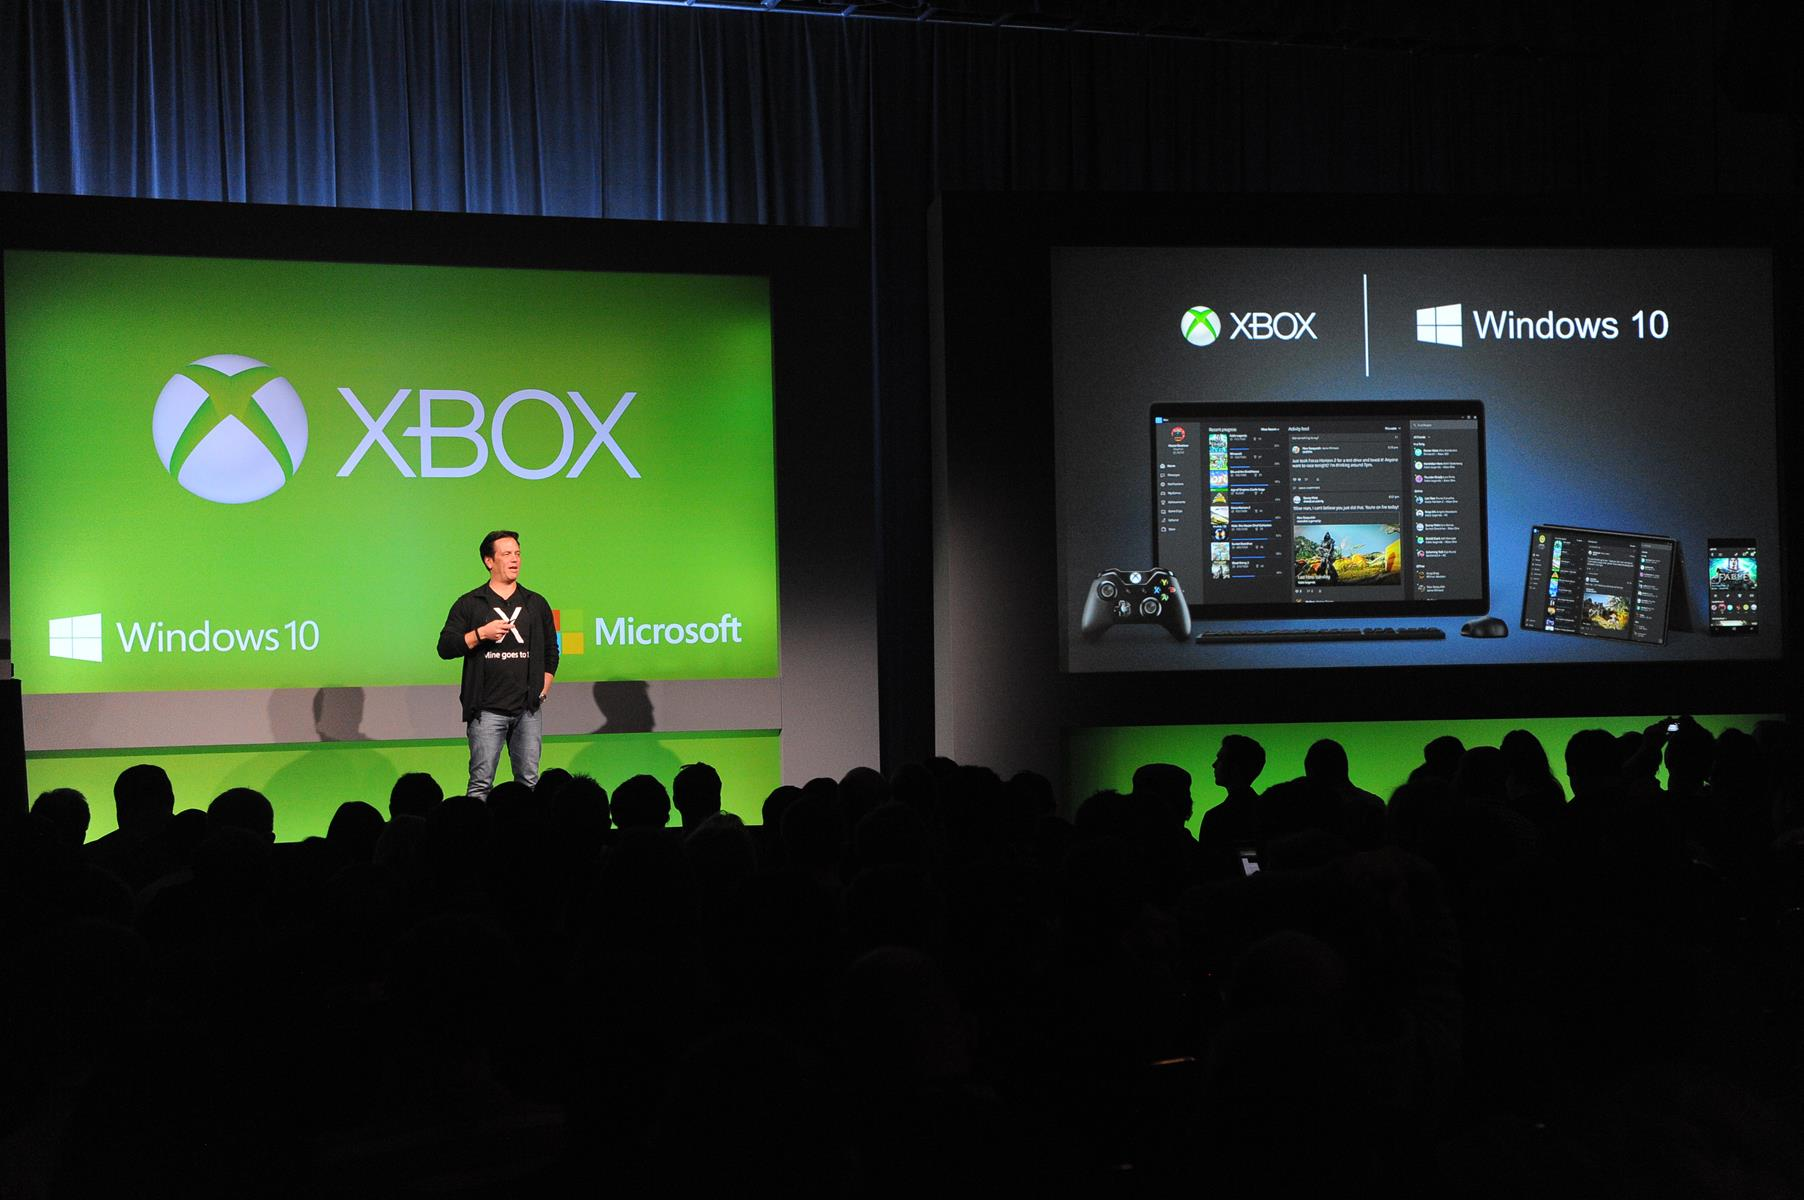 You wont need Xbox Live Gold to play online on Windows 10